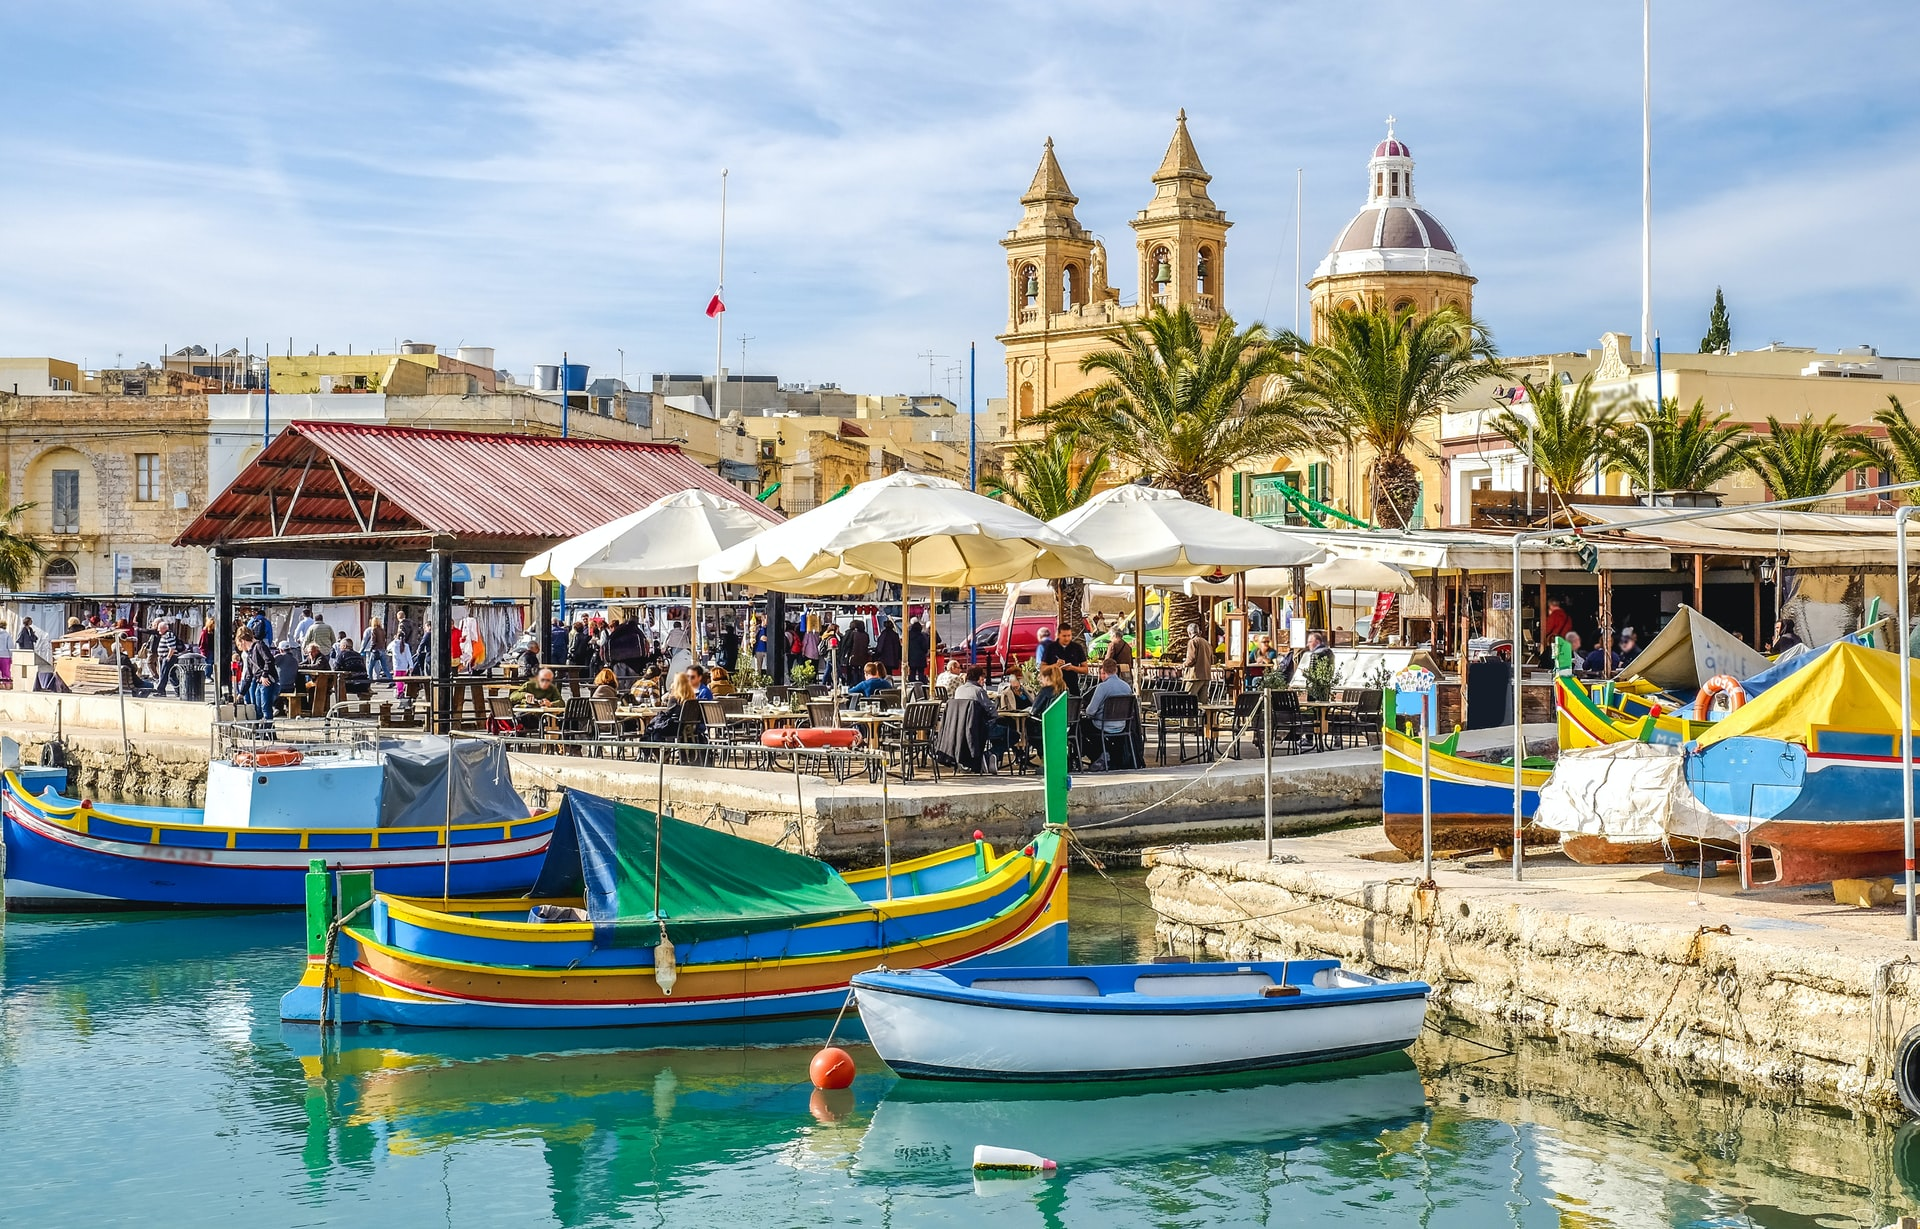 AIBC Summit Malta 2021: What you need to know